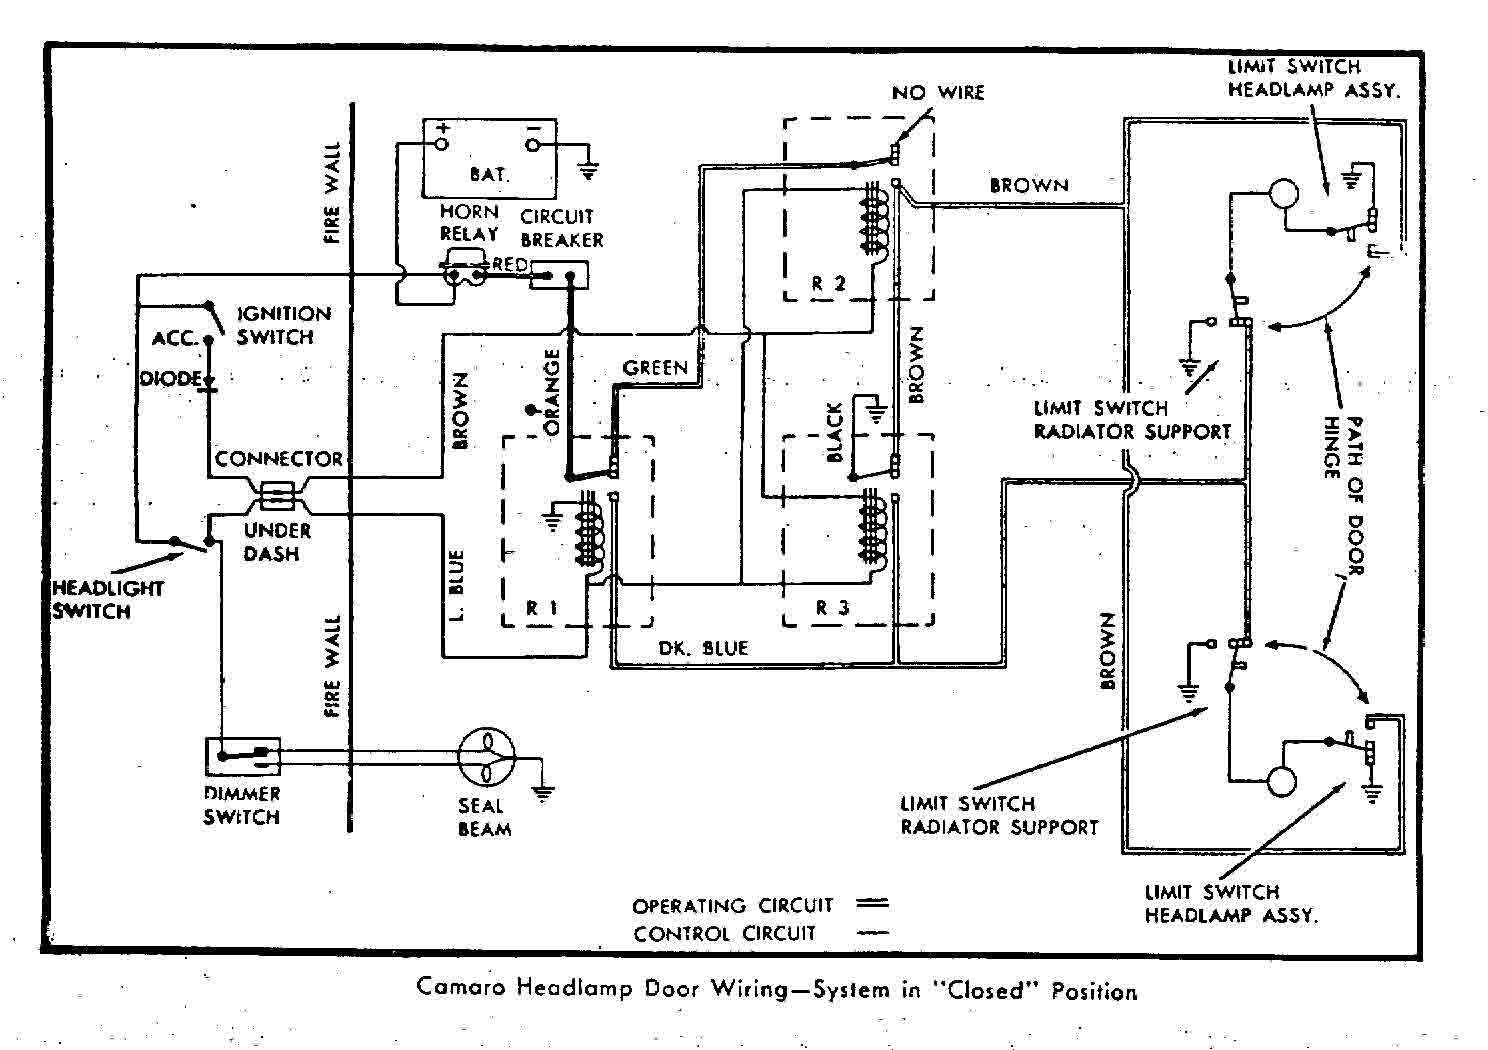 67 camaro wiring diagram example electrical wiring diagram u2022 rh cranejapan co 89 Jeep Wrangler Wiring Diagram 89 Jeep Wrangler Wiring Diagram